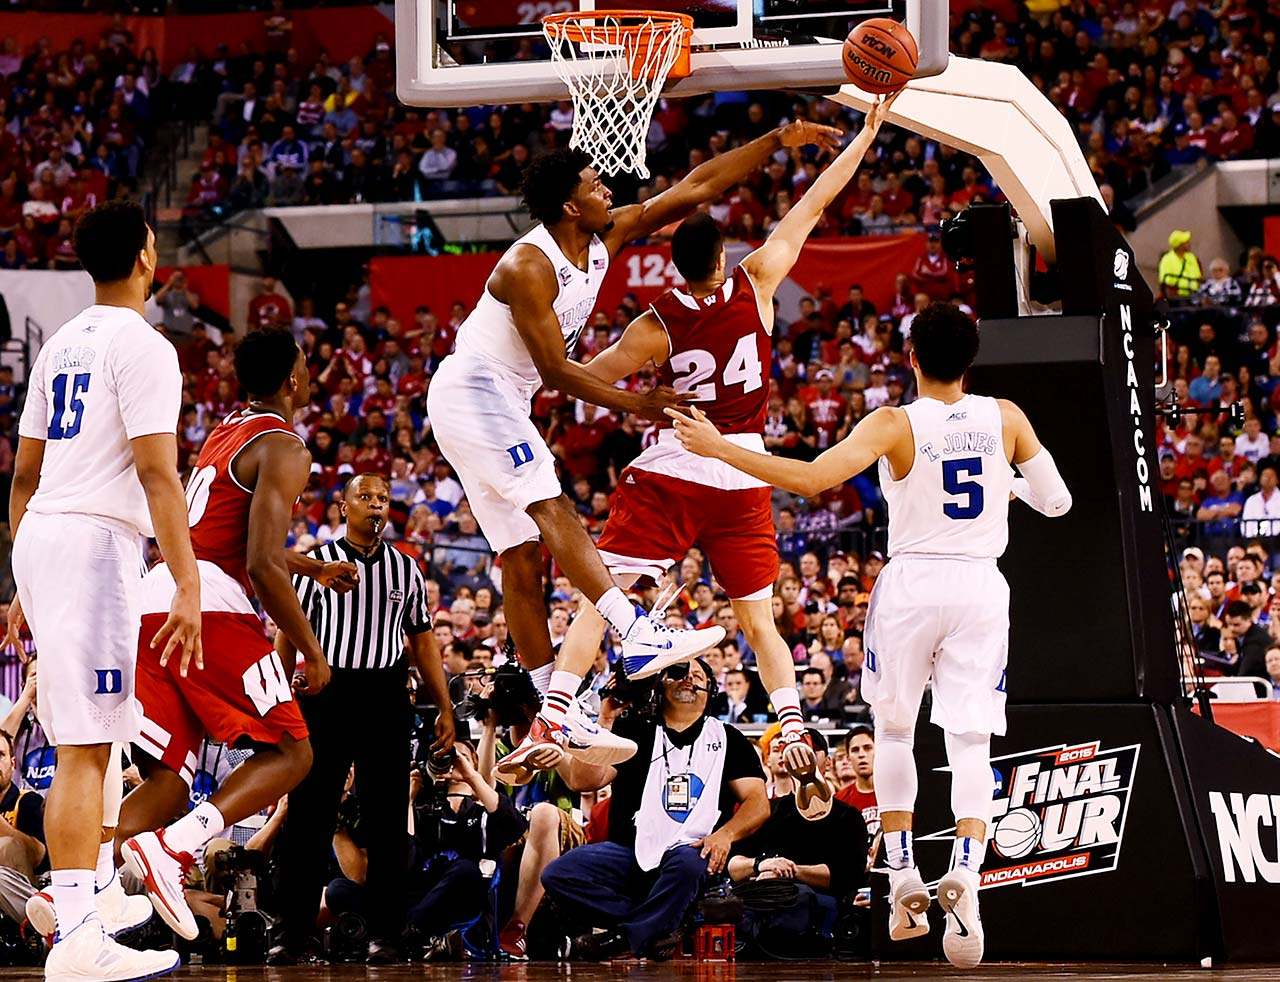 Wisconsin guard Bronson Koenig attempts to lay the ball in over Duke forward Justise Winslow. Koenig scored 10 points on 4-9 shooting.